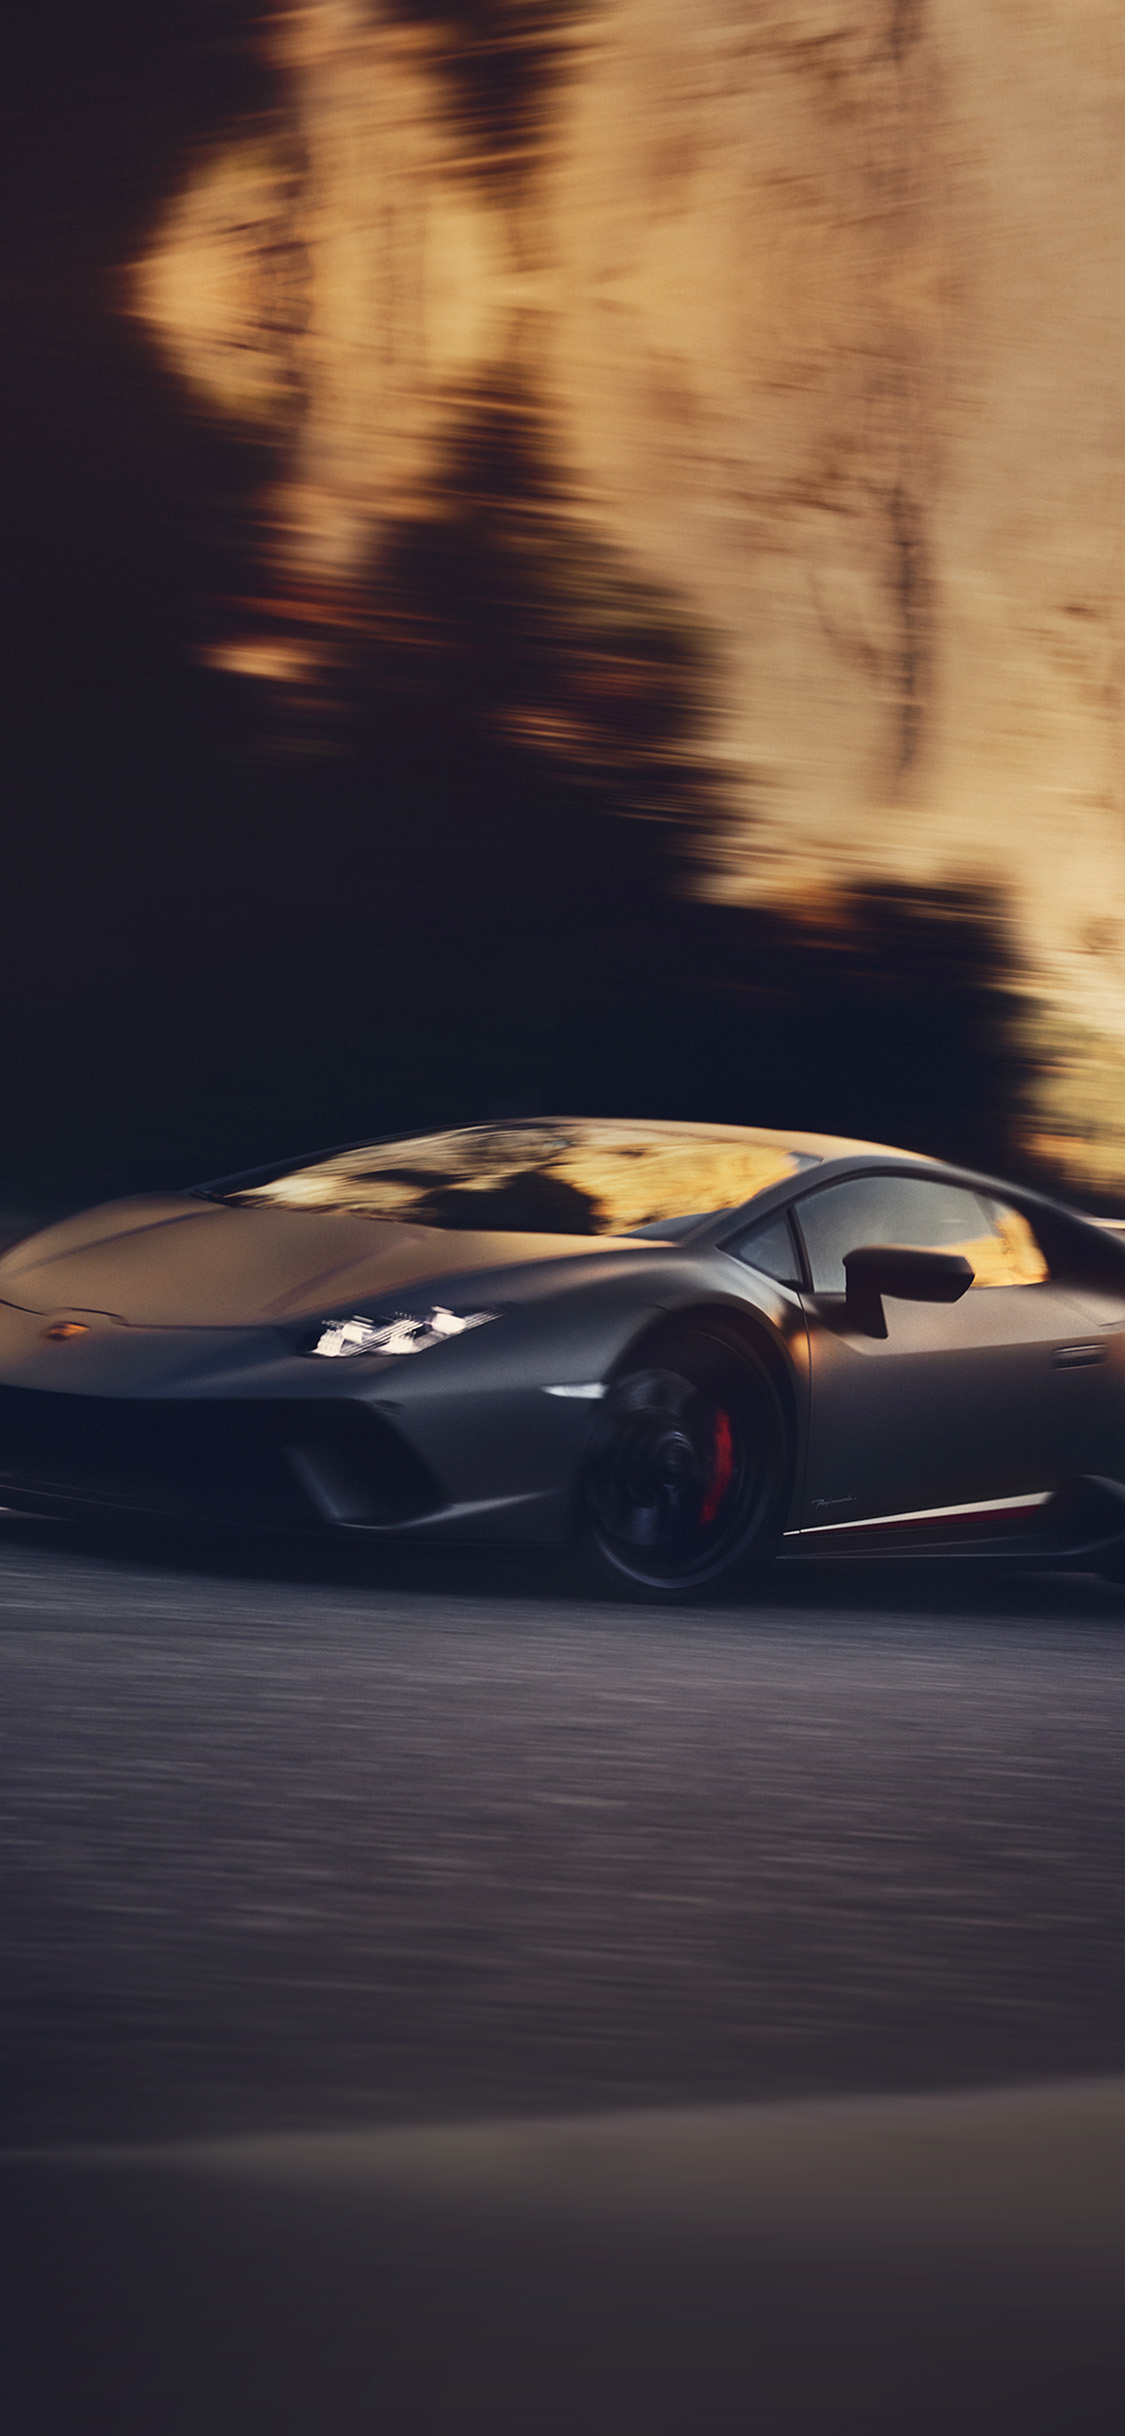 iPhonexpapers.com-Apple-iPhone-wallpaper-bh32-car-lamborghini-sports-road-race-art